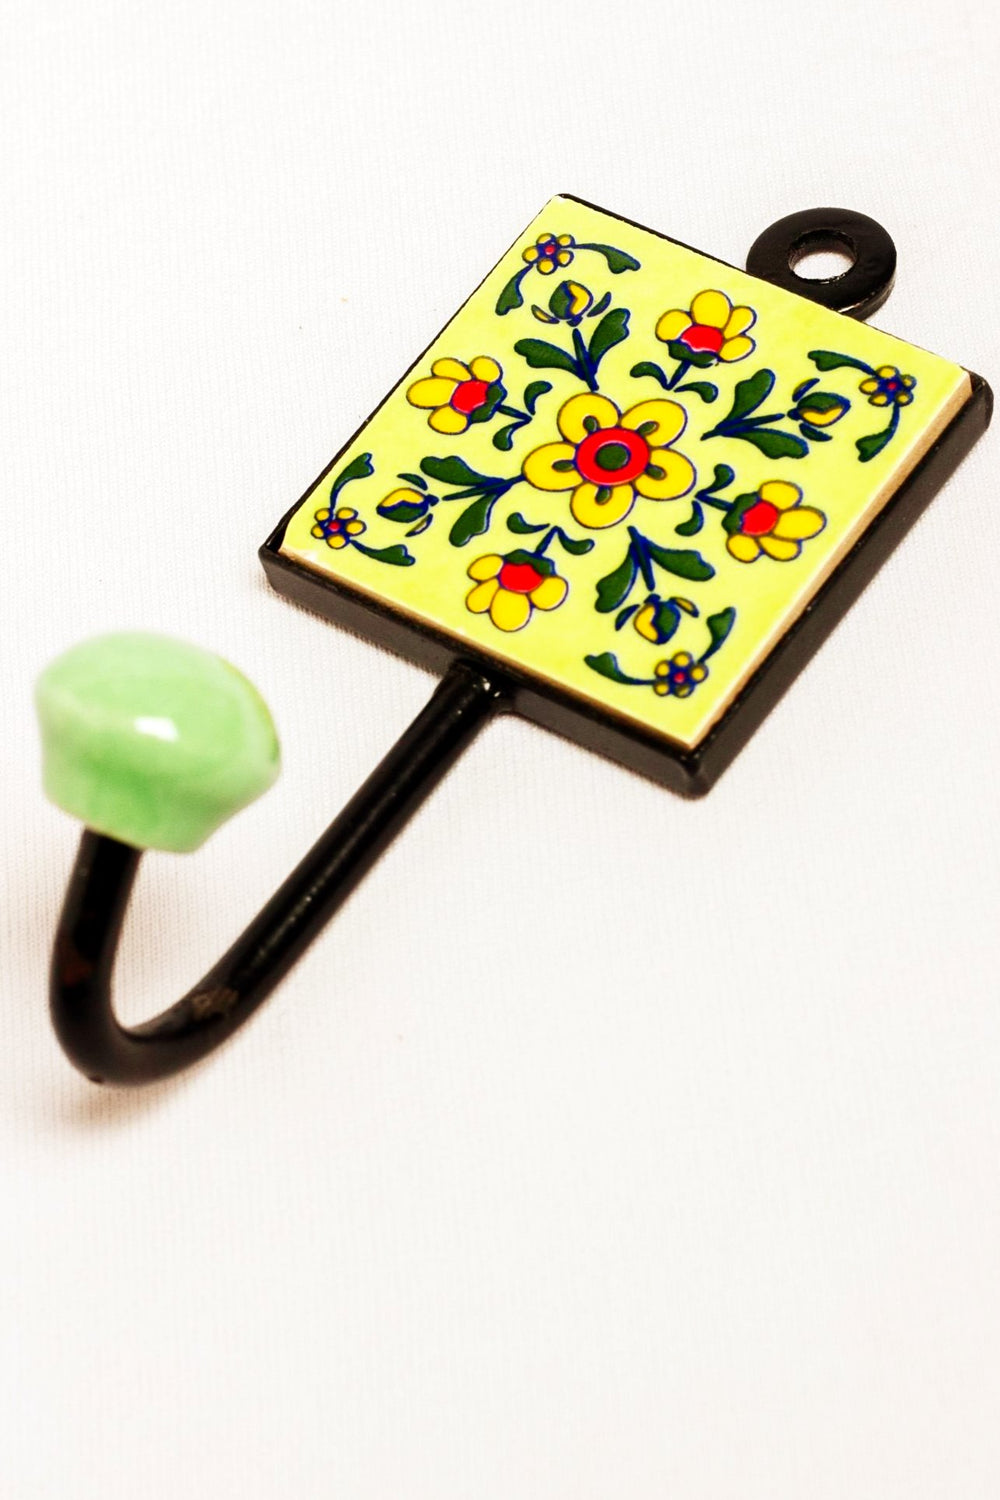 Metal and single ceramic tile wall hook, green with yellow and red floral motif